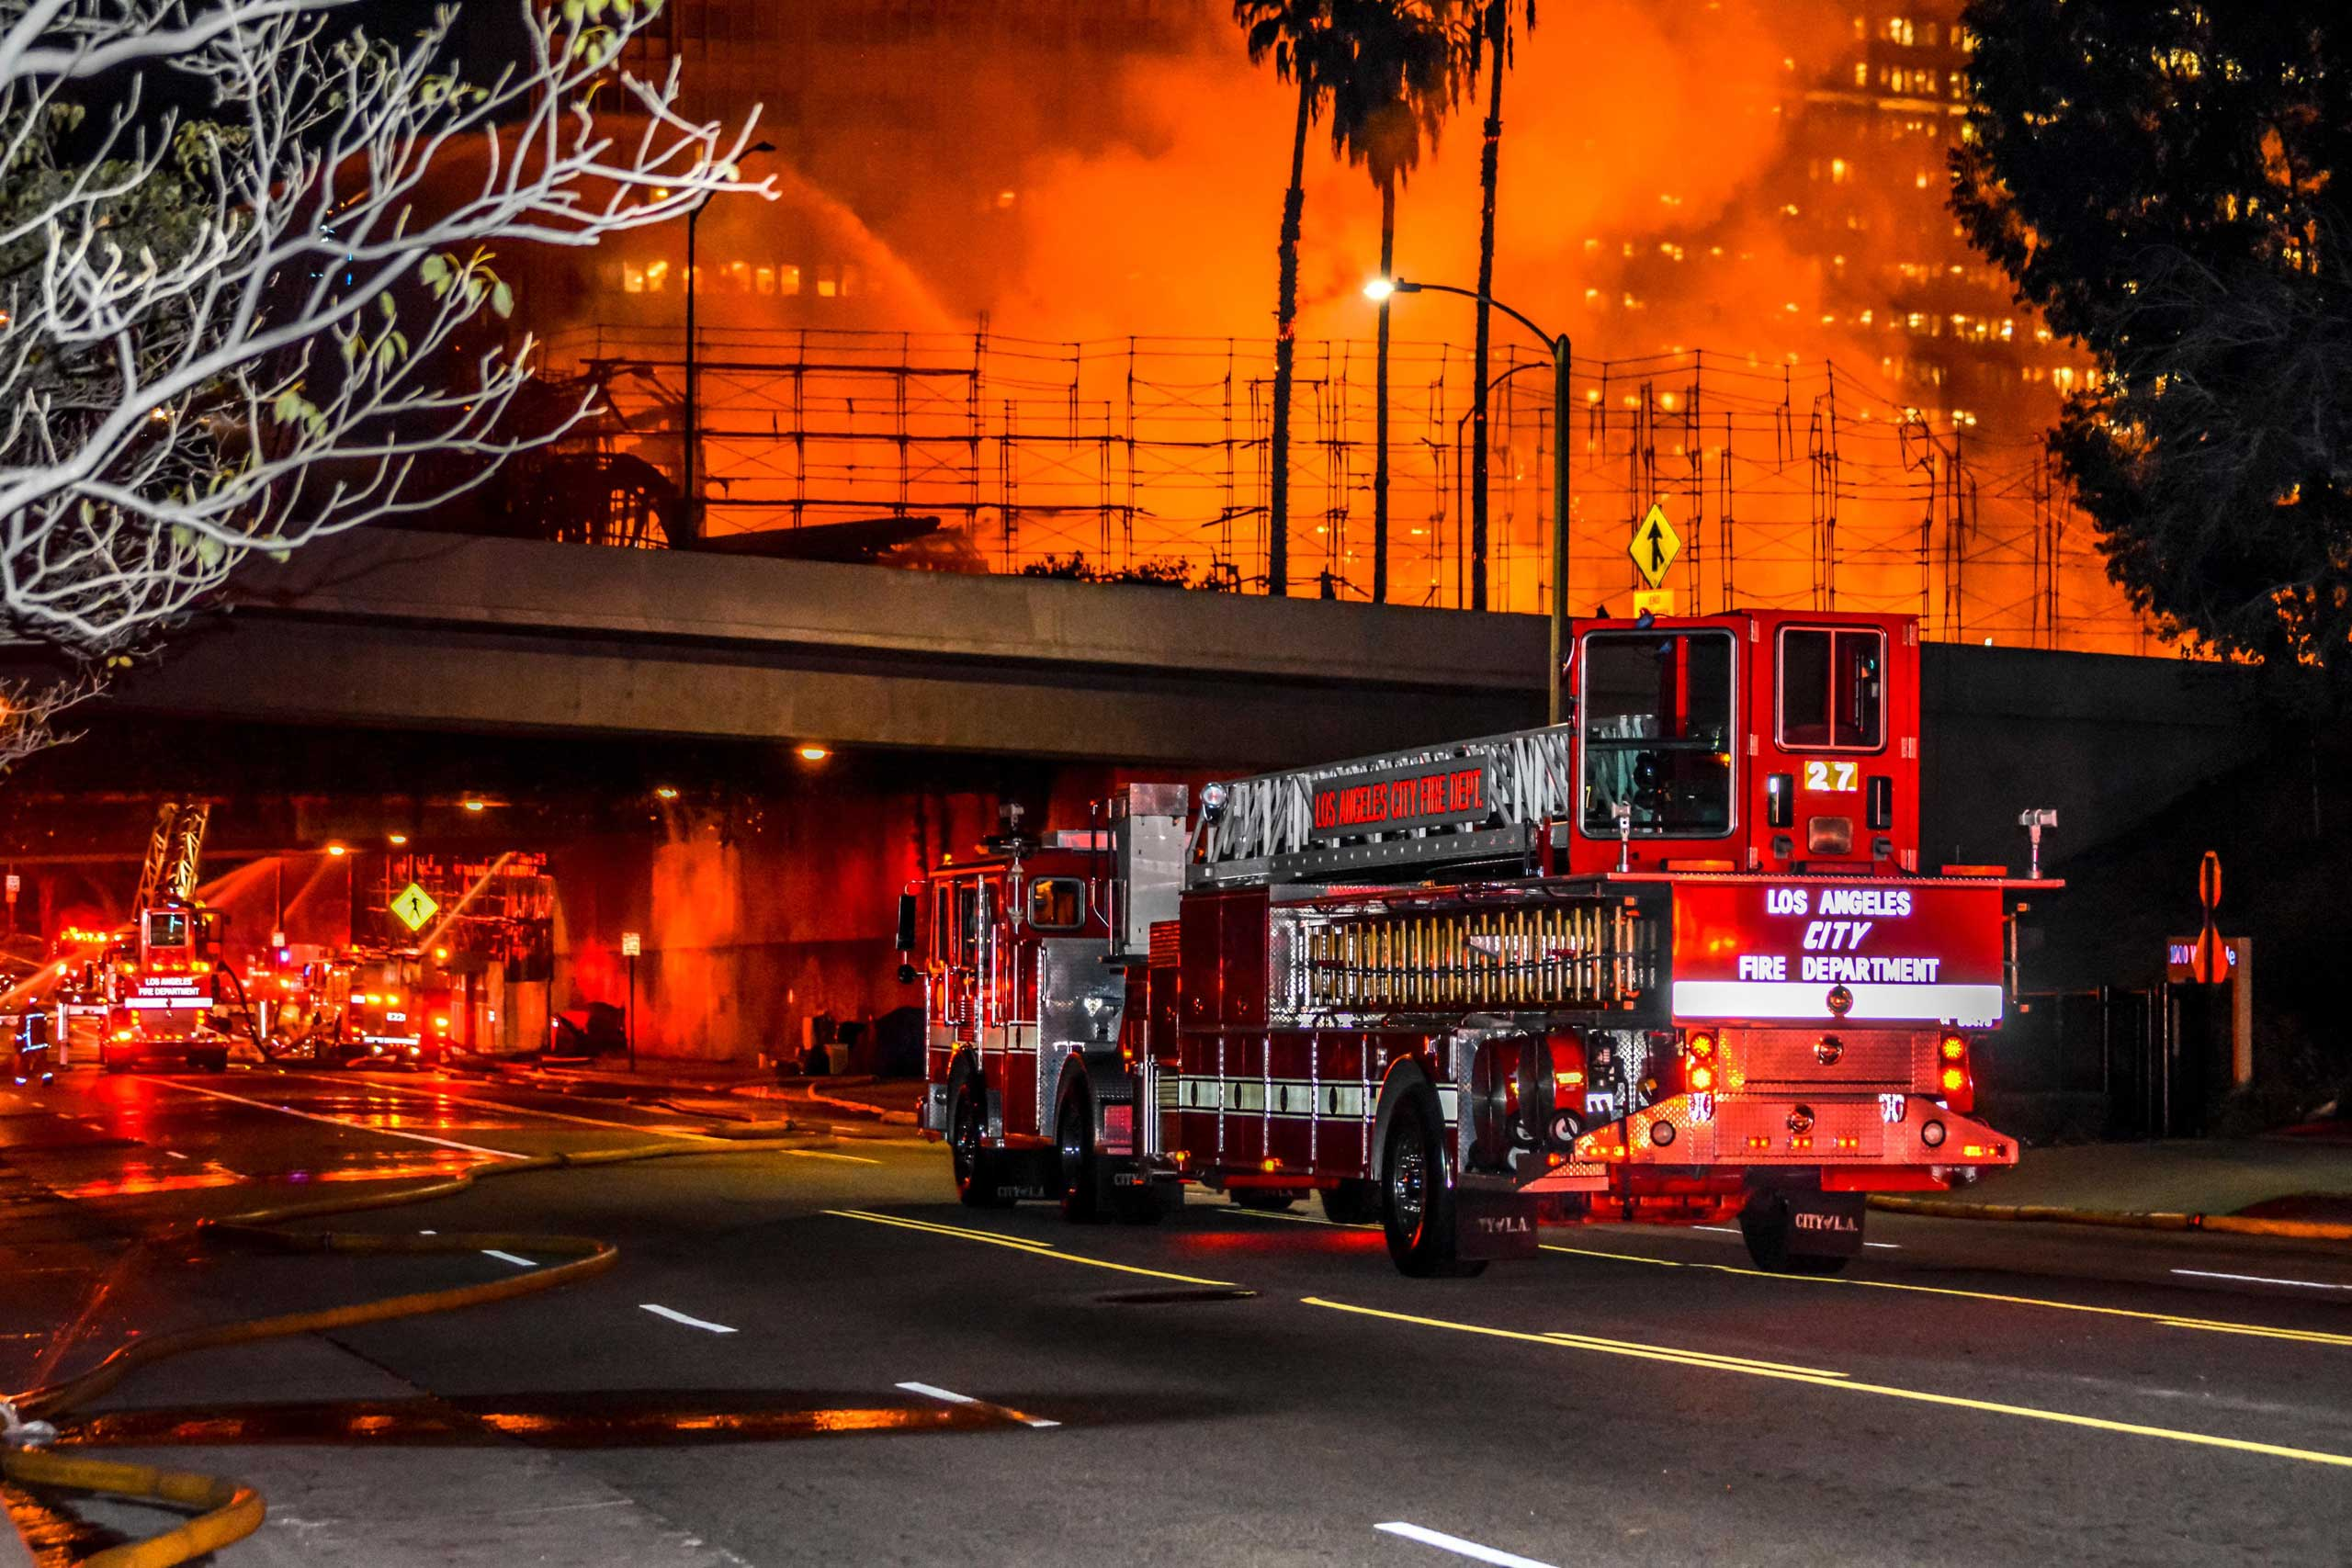 Firefighters rush to a large apartment building fire in downtown Los Angeles on Dec. 8, 2014.